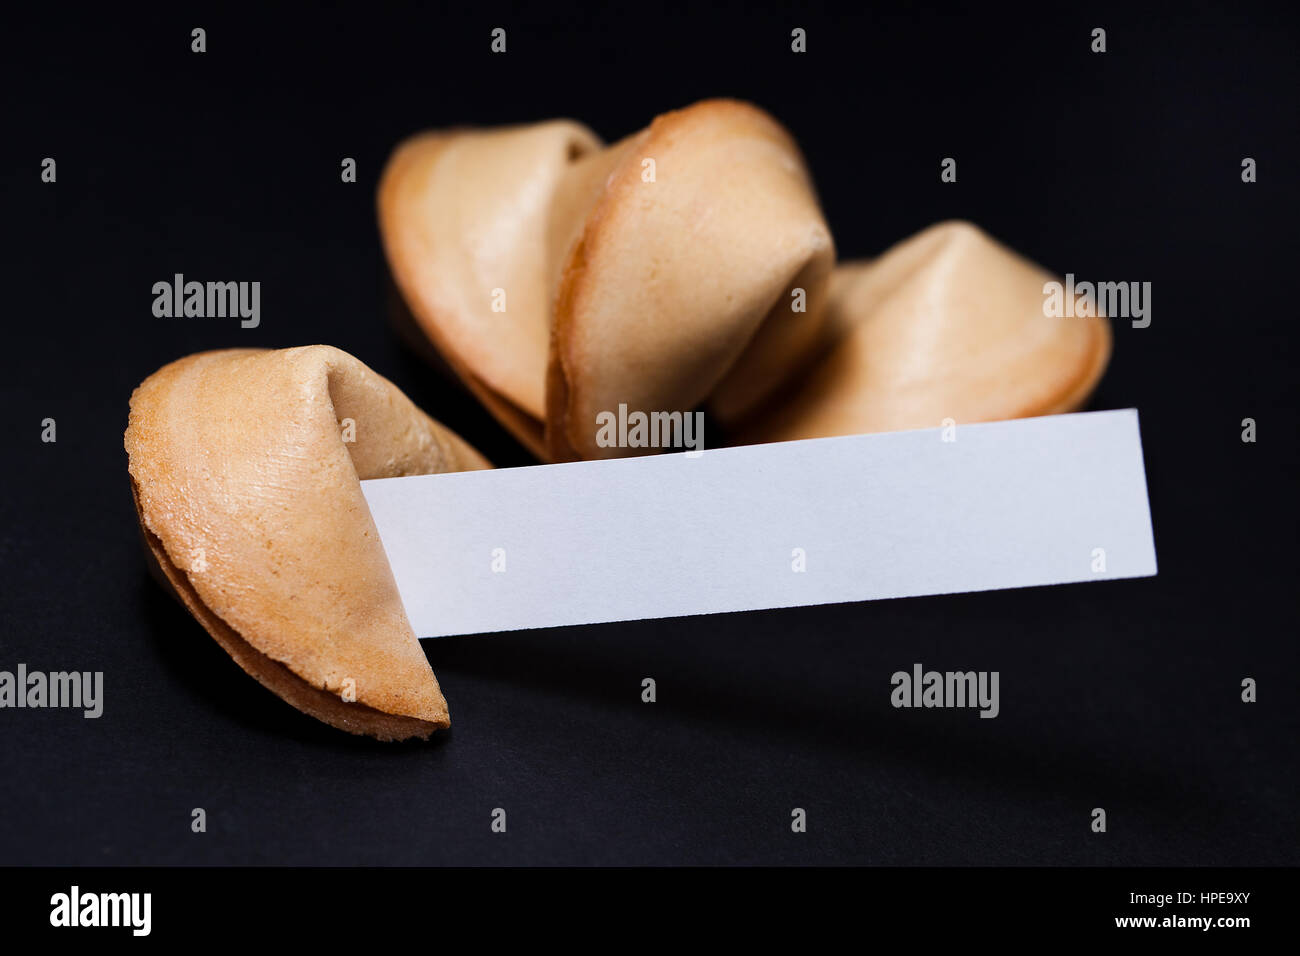 Chinese fortune cookies with blank paper strip. - Stock Image